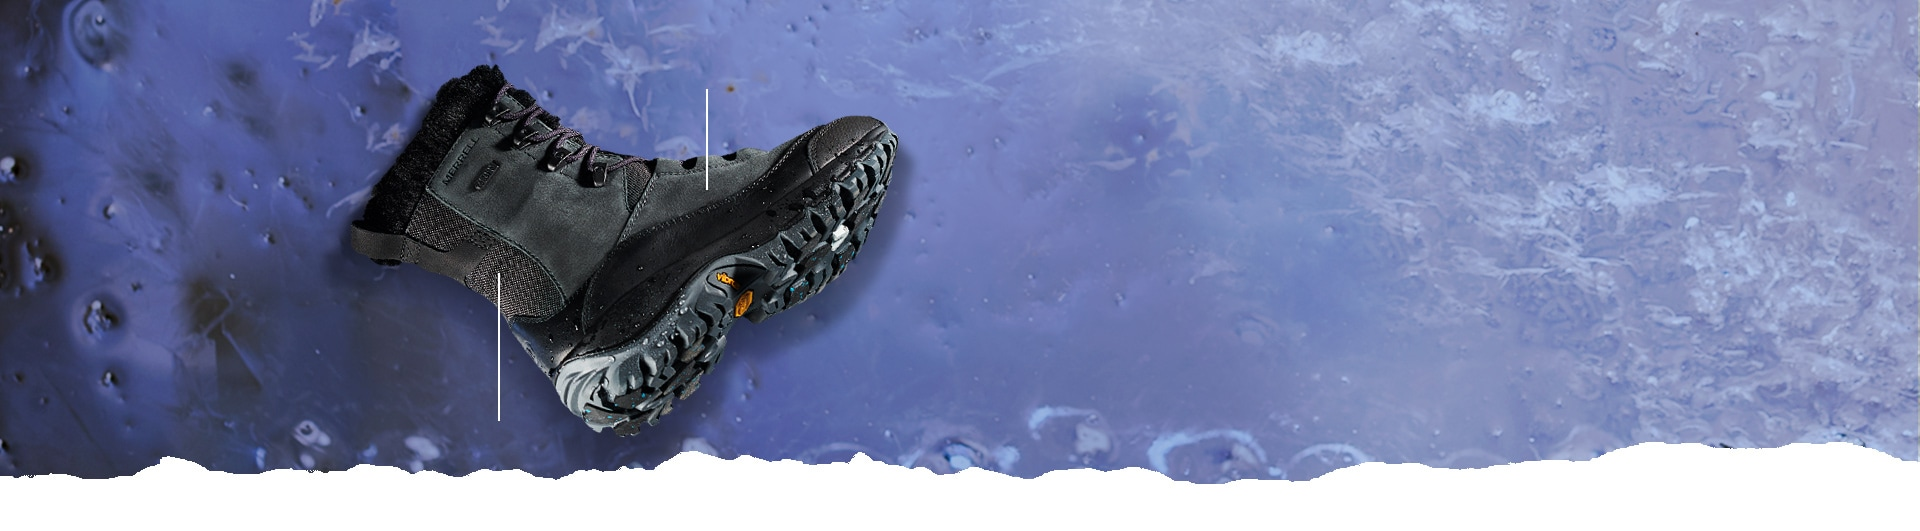 Merrell Thermo Rhea boot over a blue, cold looking surface.